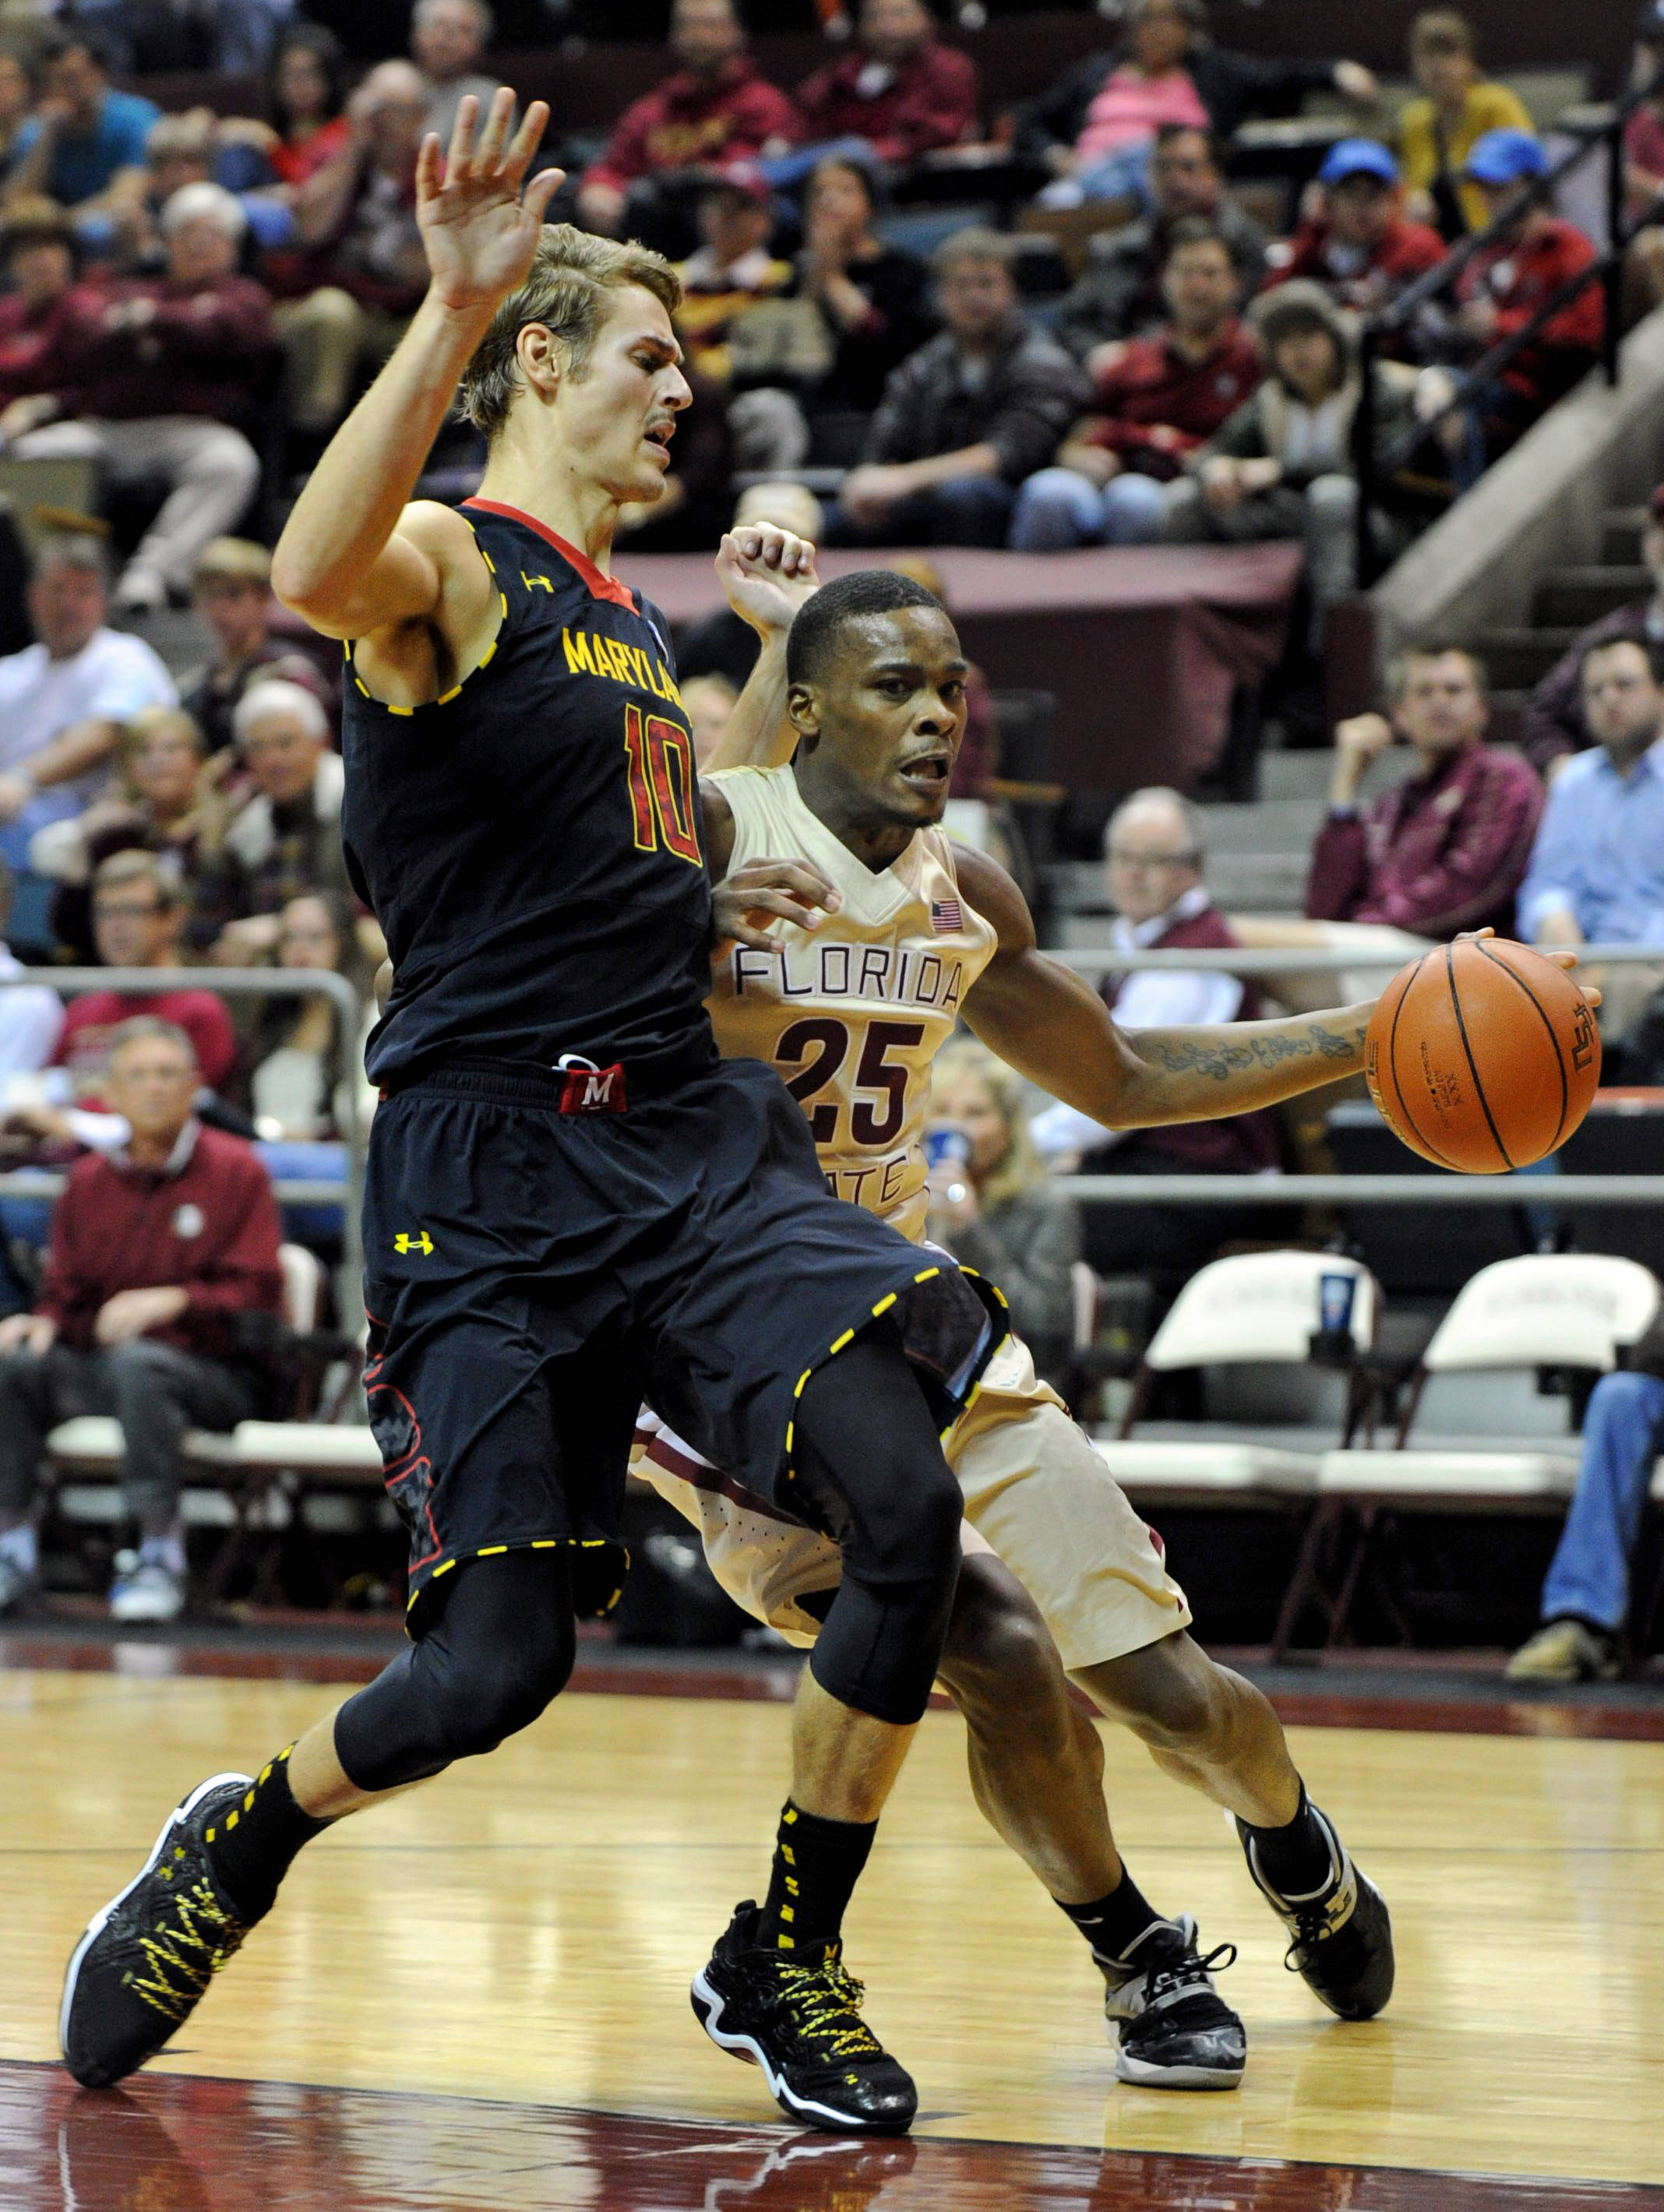 Jan 12, 2014; Tallahassee, FL, USA; Florida State Seminoles guard Aaron Thomas (25) moves the ball past Maryland Terrapins forward Jake Layman (10) during the first half at Donald L. Tucker Center. Mandatory Credit: Melina Vastola-USA TODAY Sports